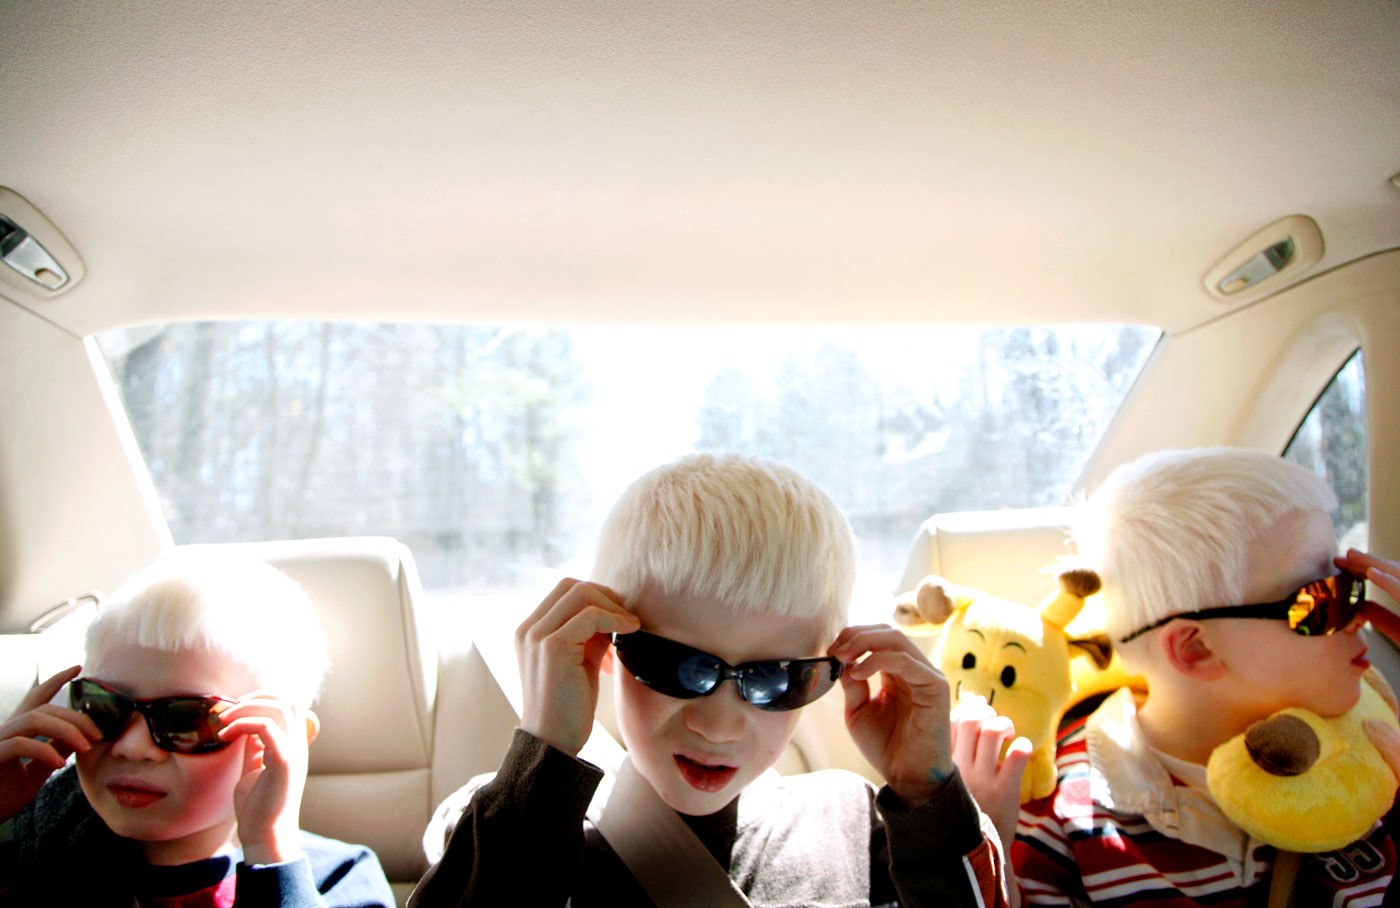 Micah, 9, Elijah, 10, and Paul, 8, put their sunglasses on as they head to a homeschool science class. People with albinism are sensitive to bright light and have low-vision issues.